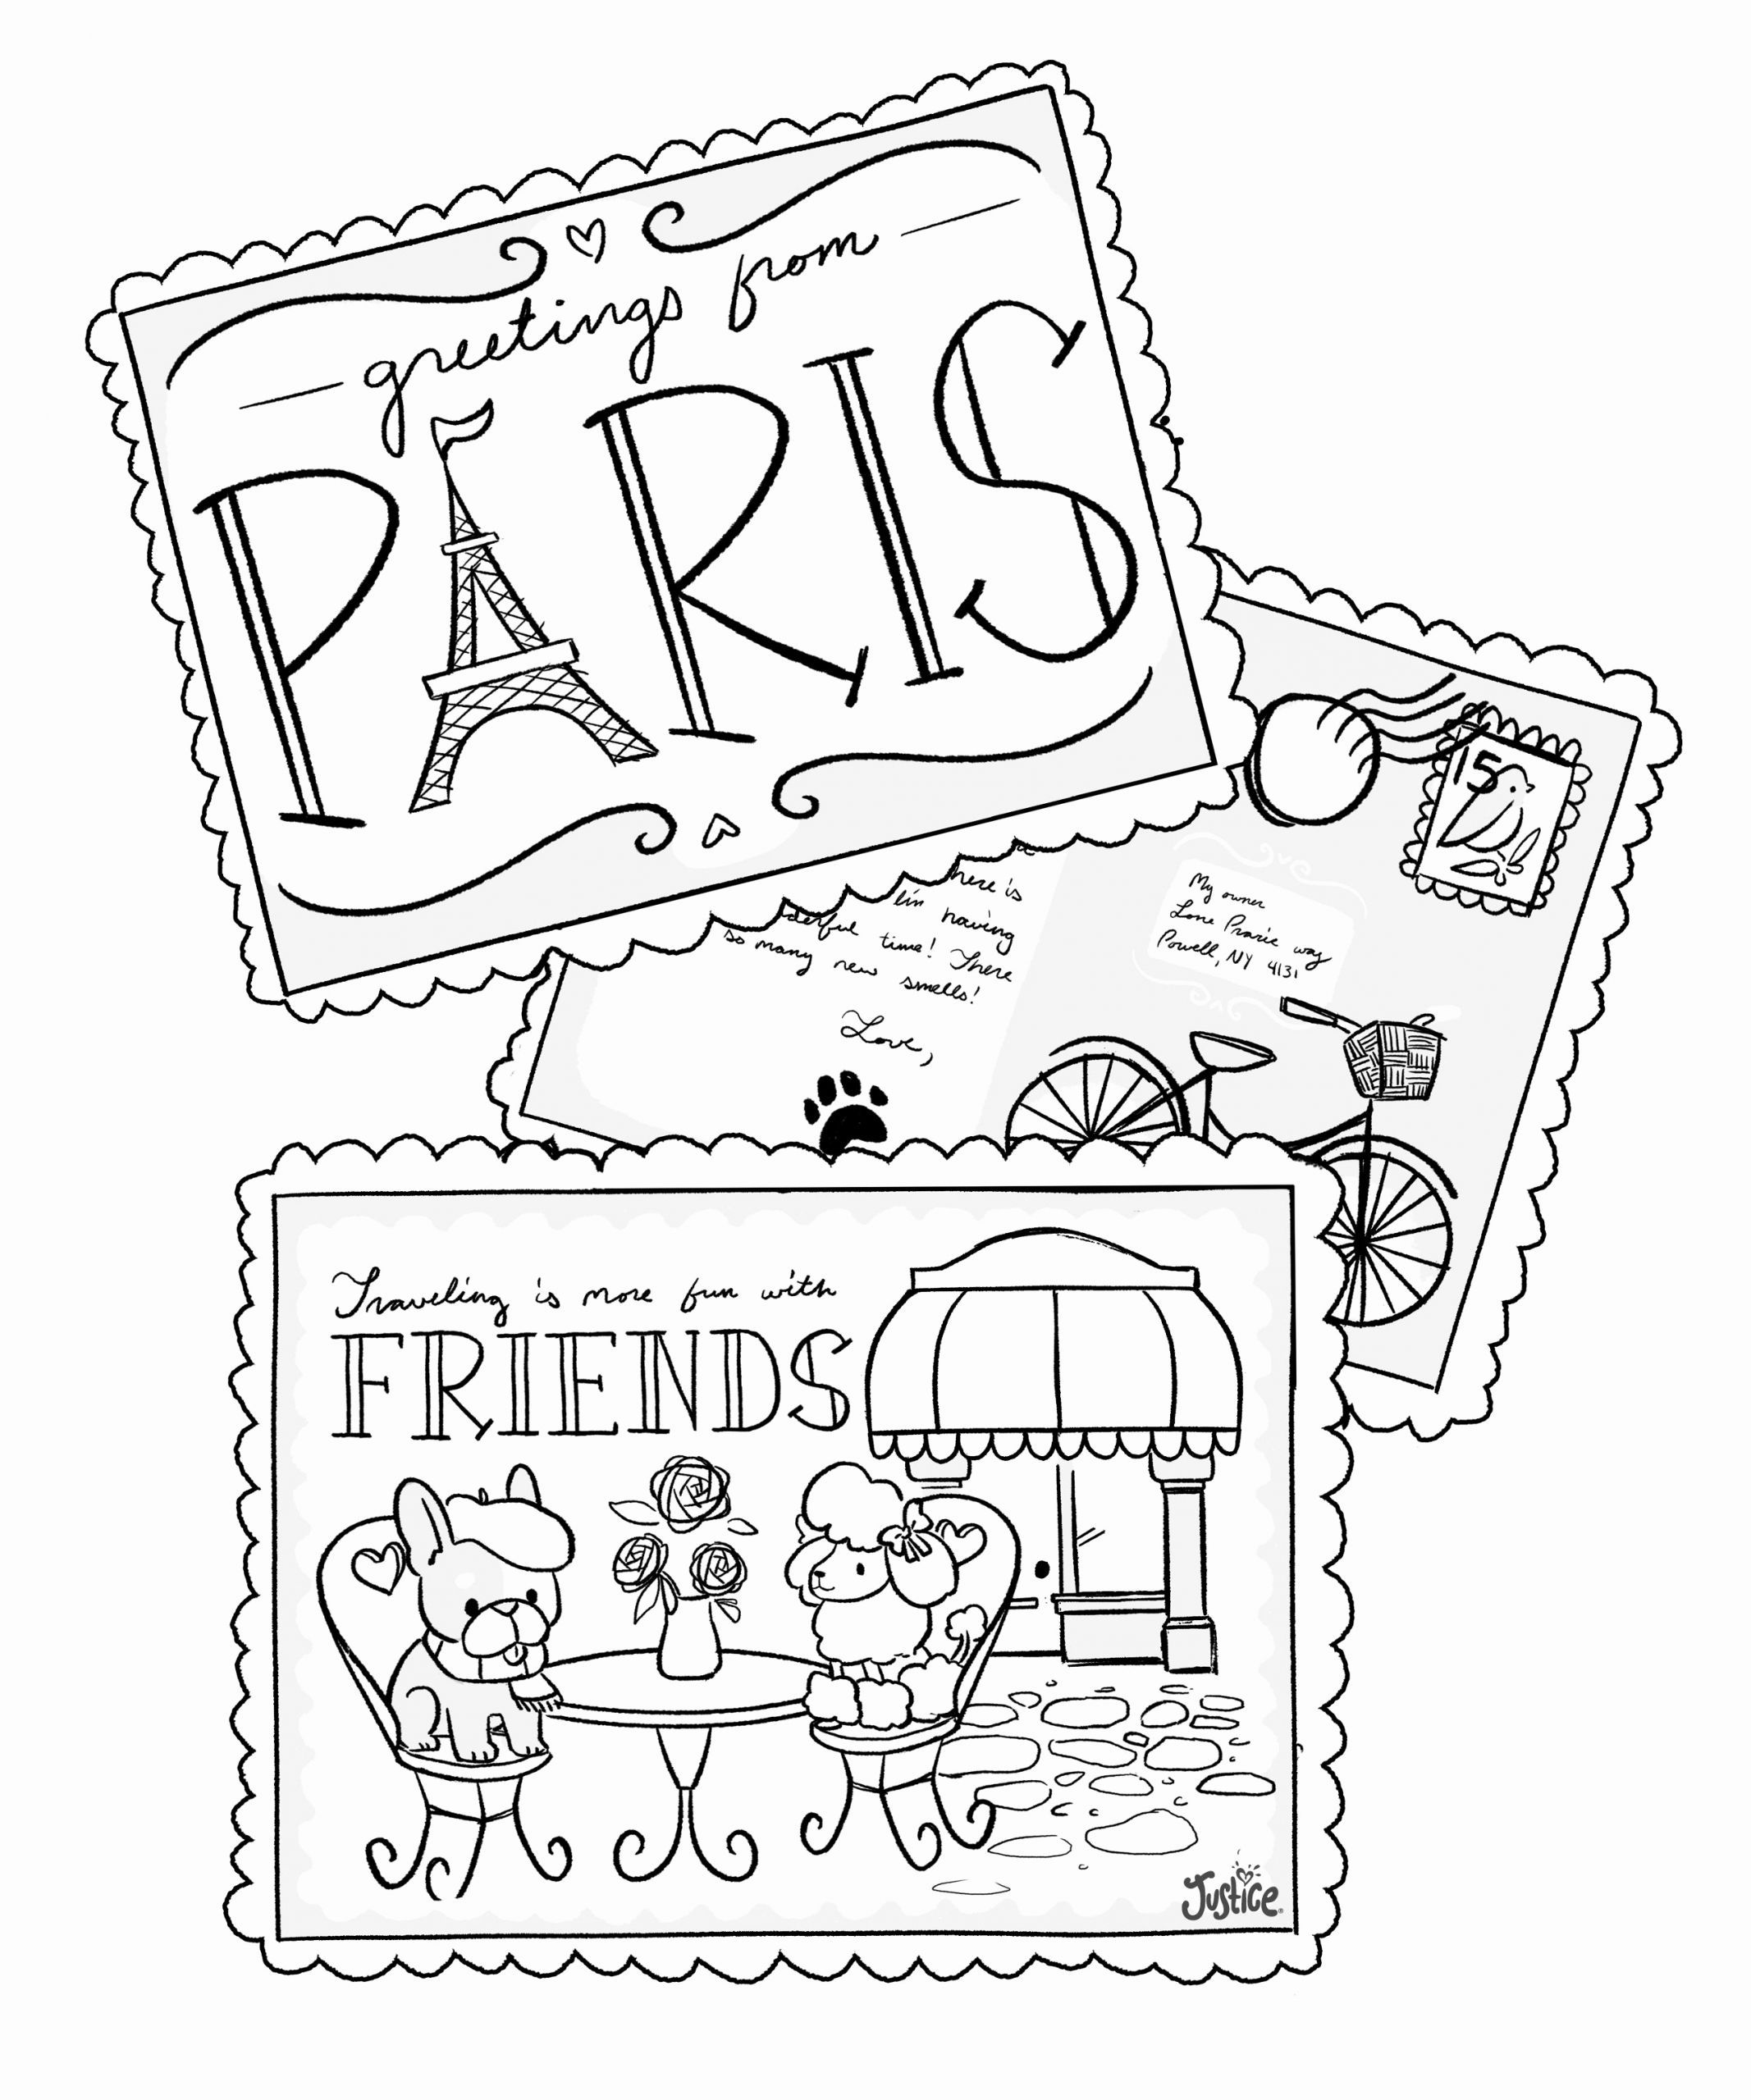 Spring Break Coloring Sheets Best Of Color These Pretty Pictures To Pass The Time On Your Coloring Pages Spring Coloring Pages Spring Break Kids